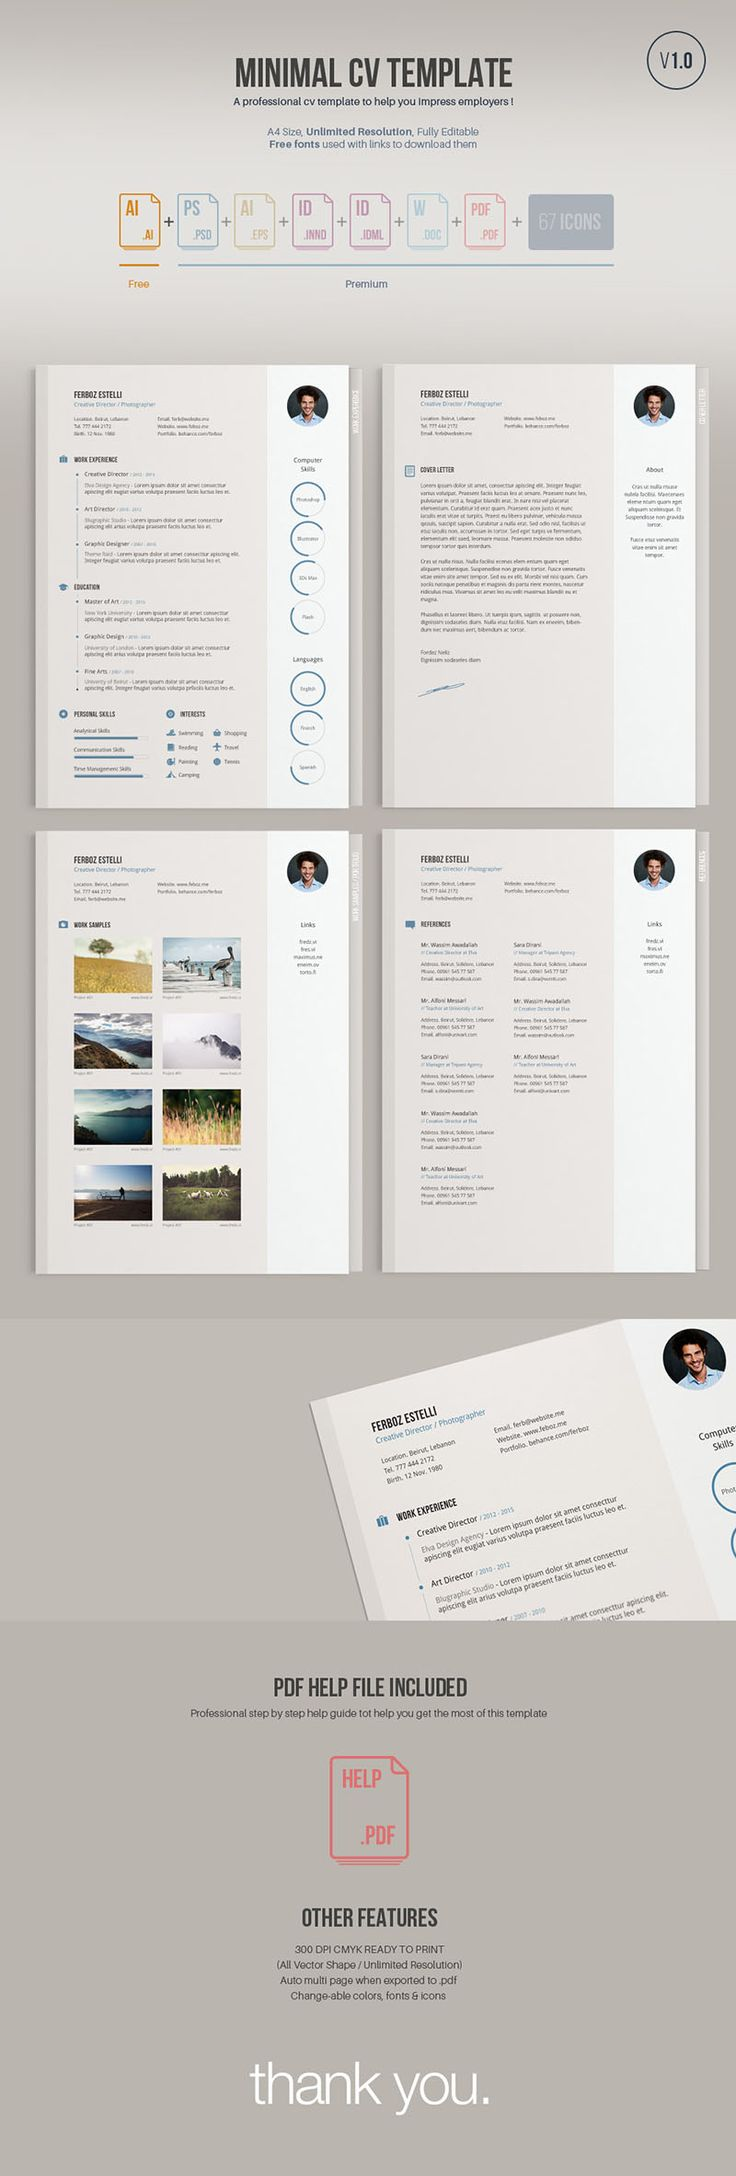 17 best images about resume template creative a minimal easy to edit resume template version comes in illustrator vector ai format